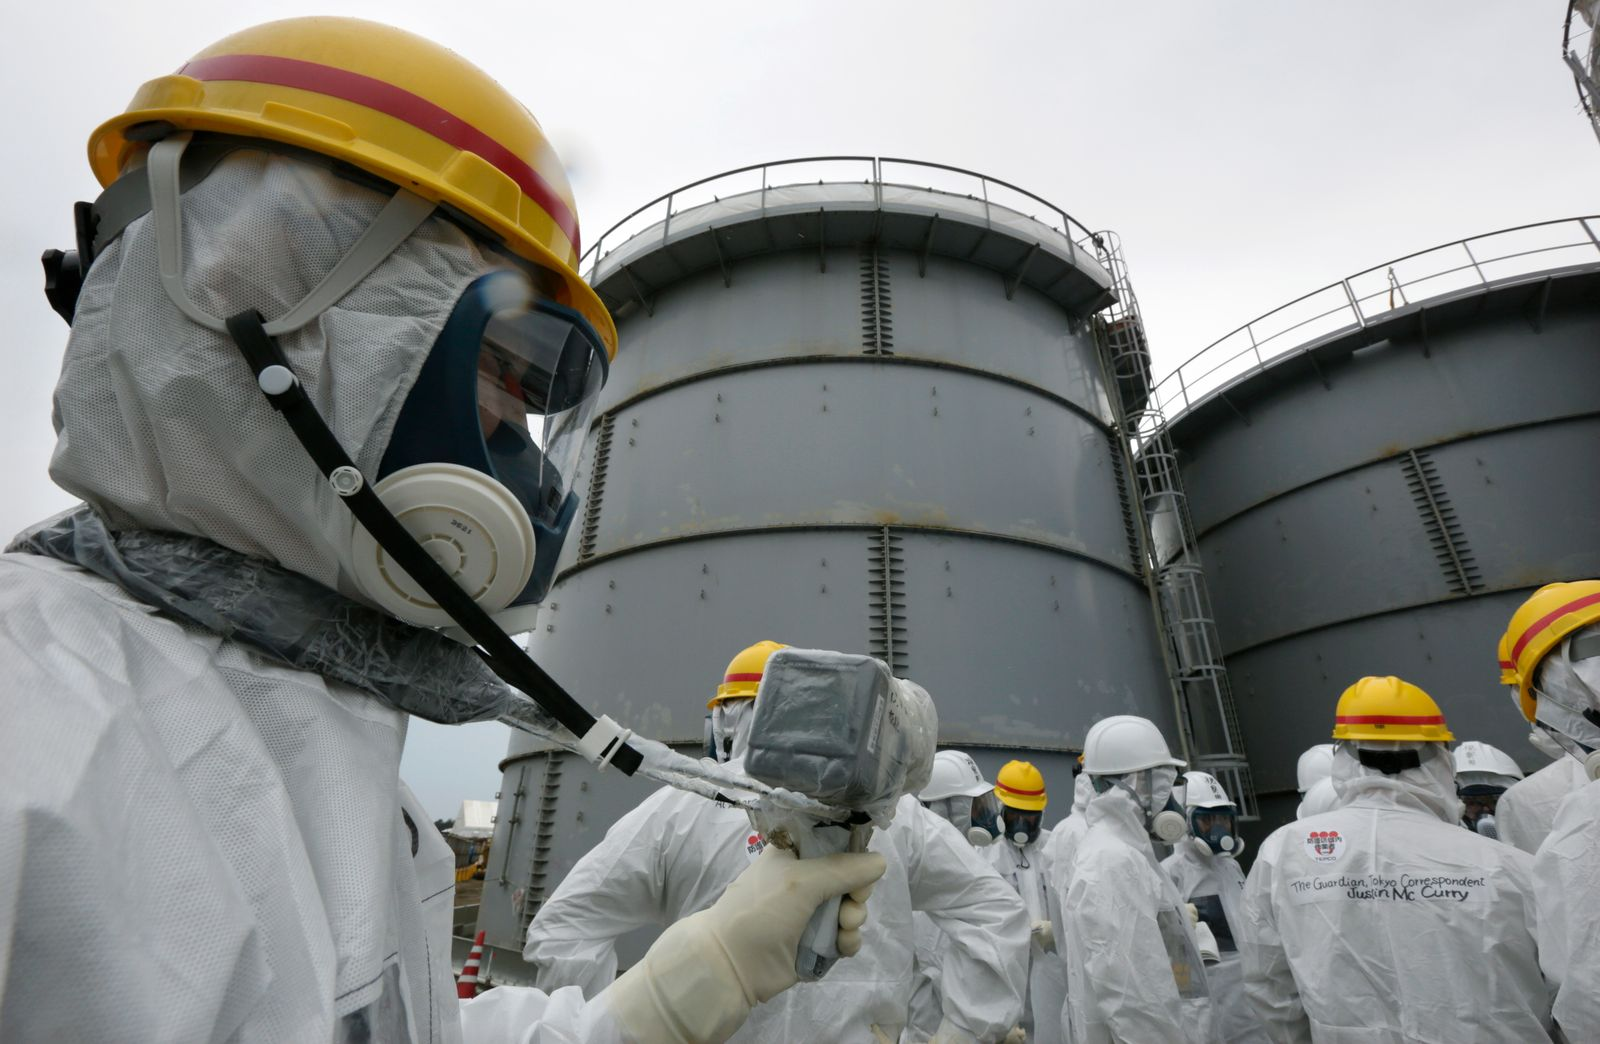 Japan to release water from Fukushima Daiichi nuclear plant into the ocean